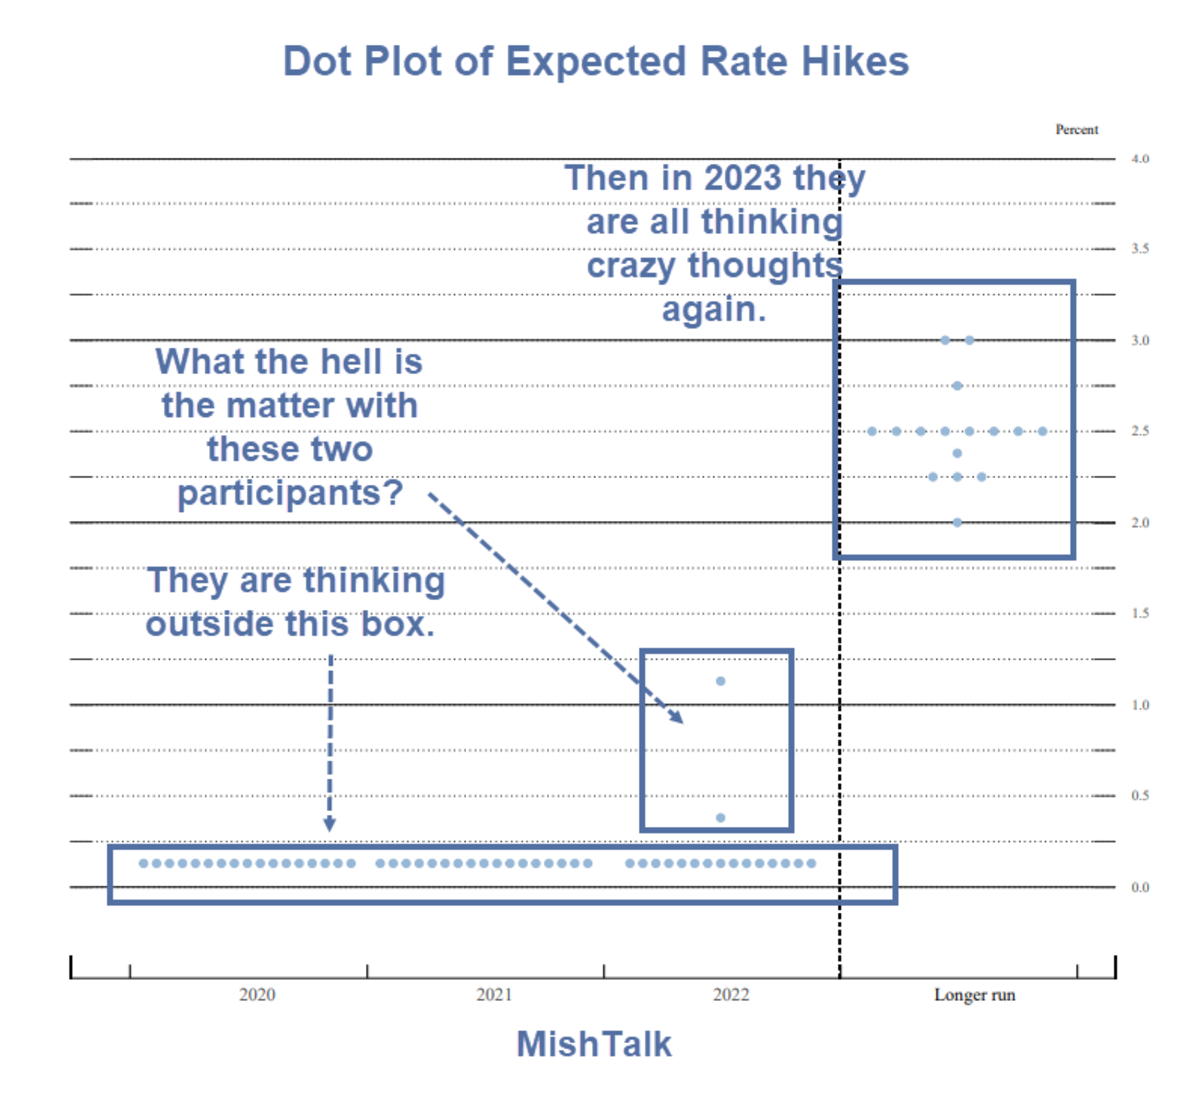 Dot Plot of Expected Rate Hikes June 2020 No Thinking UNtil 2023